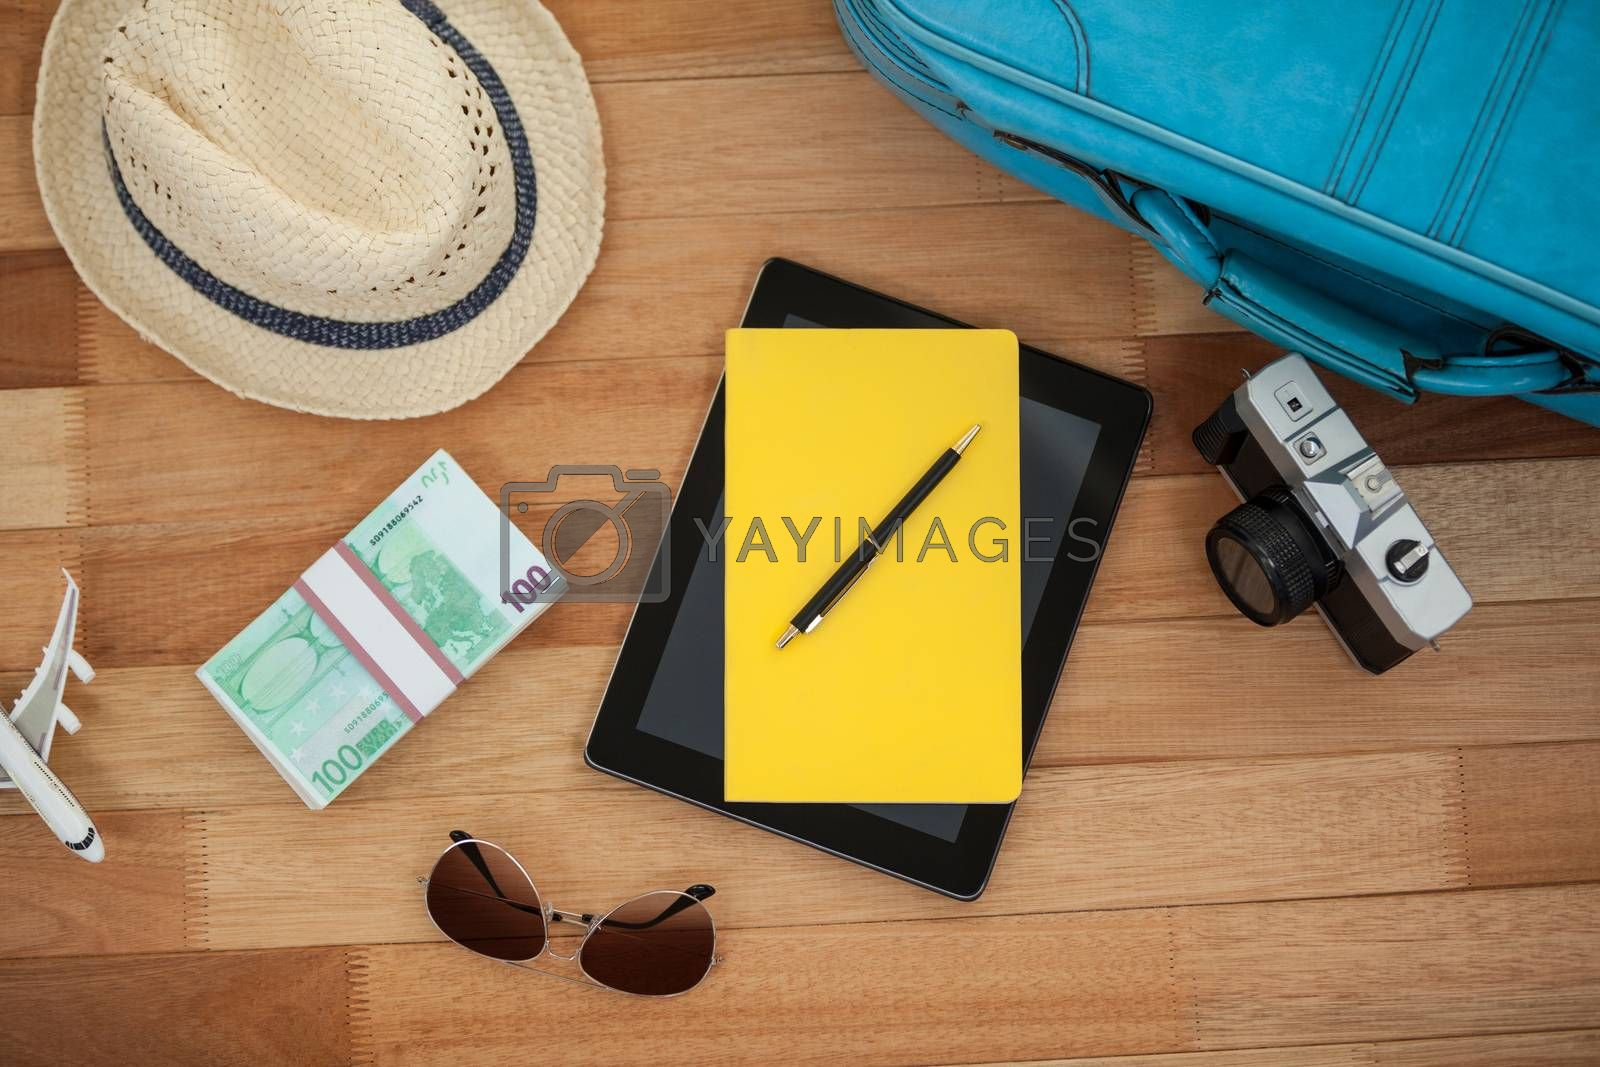 Travel accessories on wooden floor by Wavebreakmedia